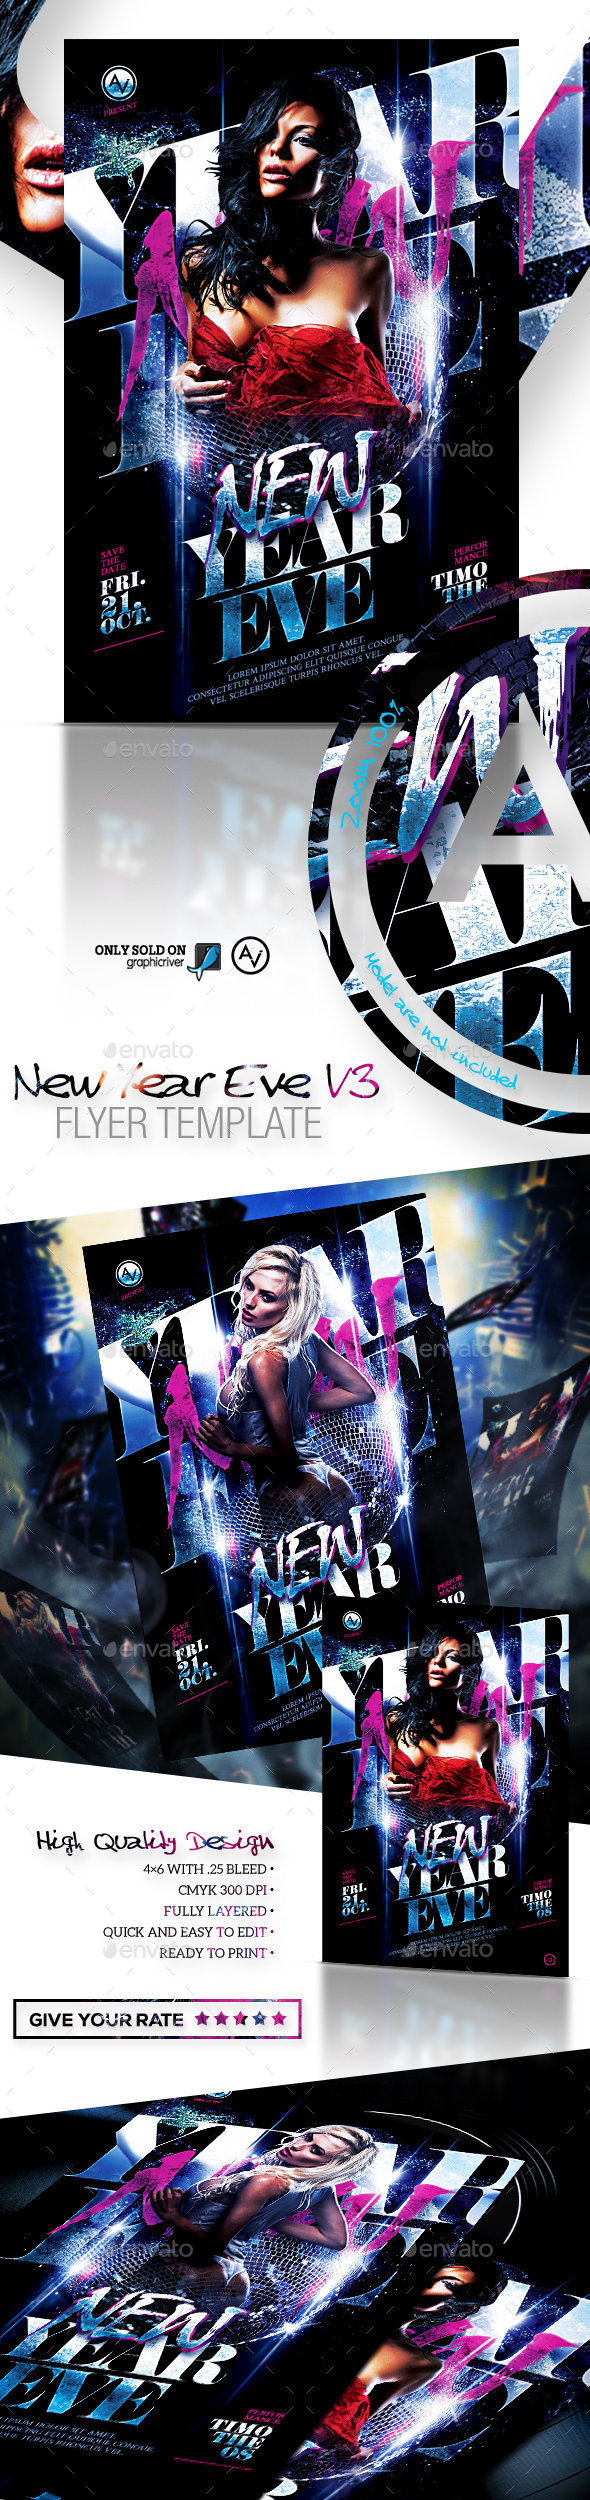 New Year Eve Flyer Template V3 - Clubs & Parties Events